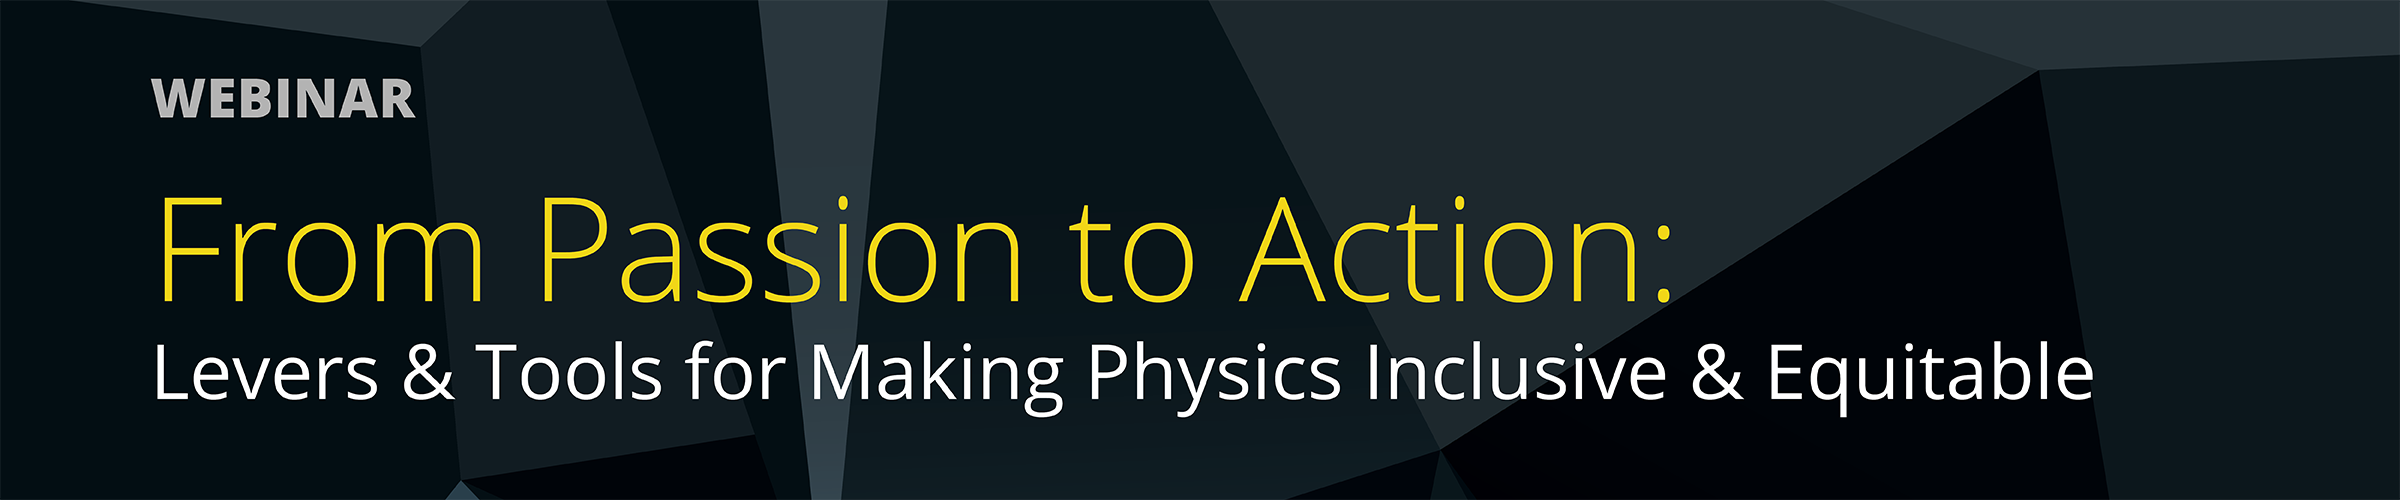 From Passion to Action: Levers and Tools for Making Physics Inclusive and Equitable